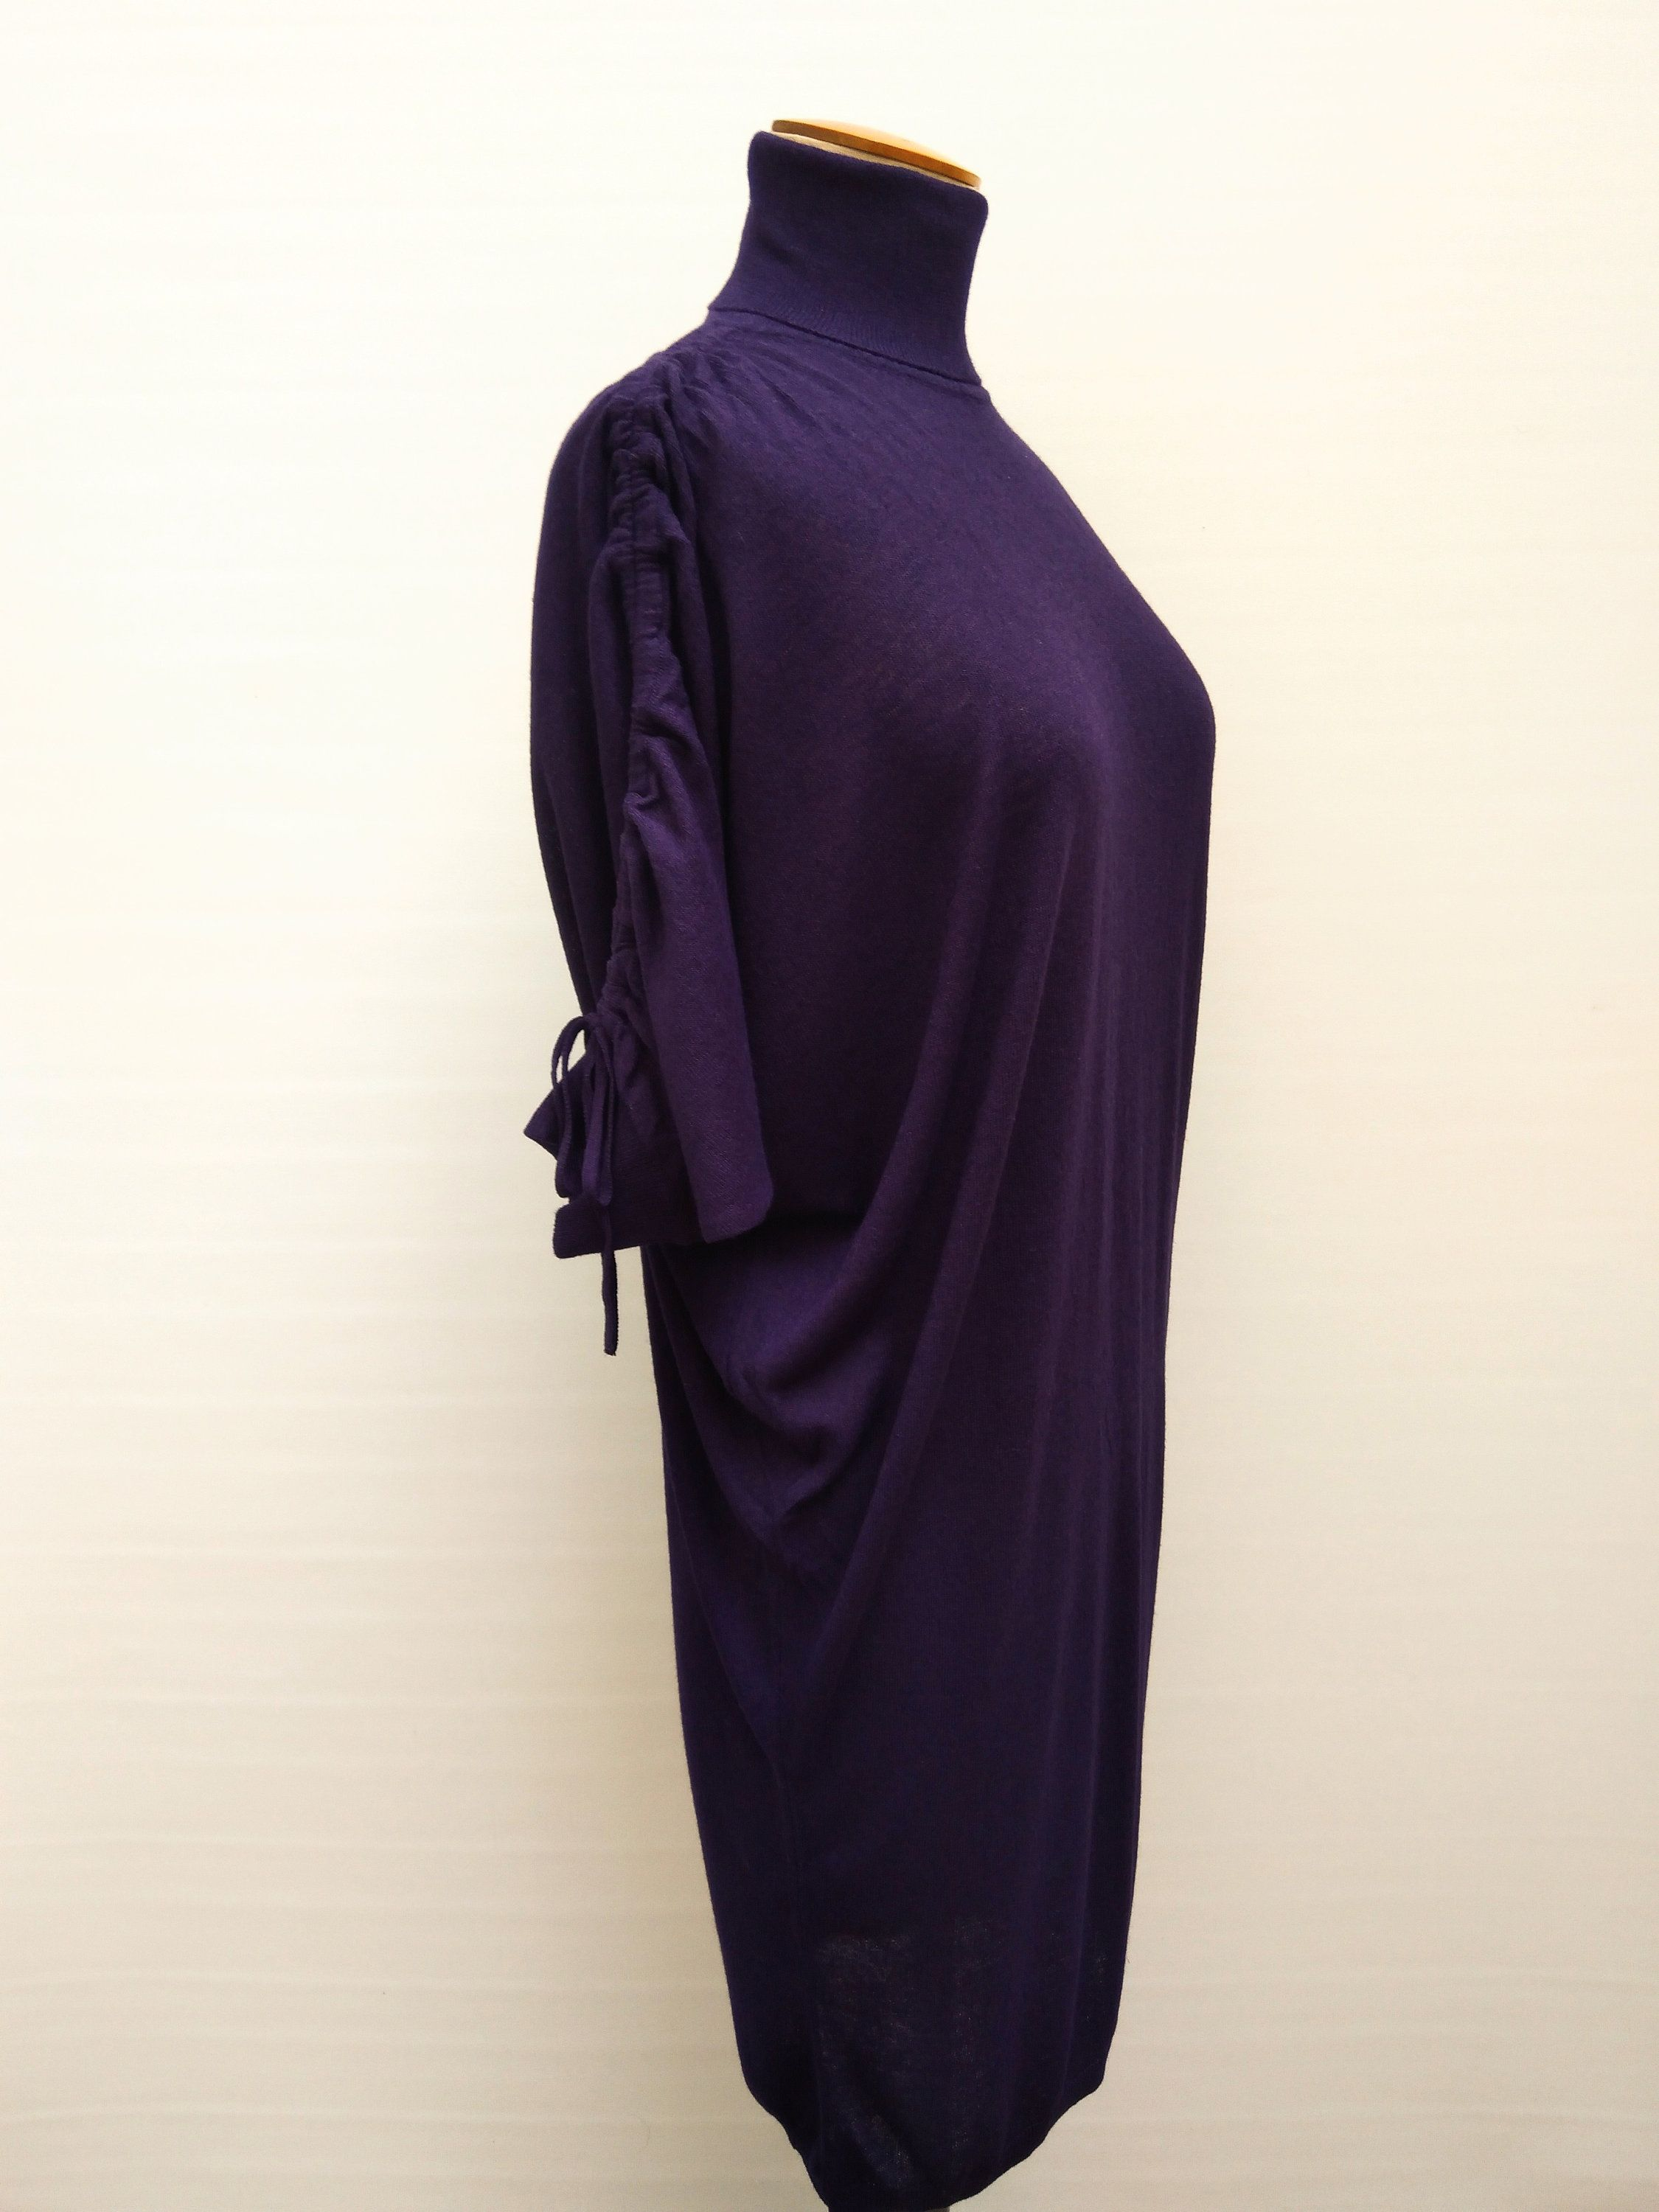 VANESSA BRUNO ATHE pre-owned purple fine knit batwing sleeve dress